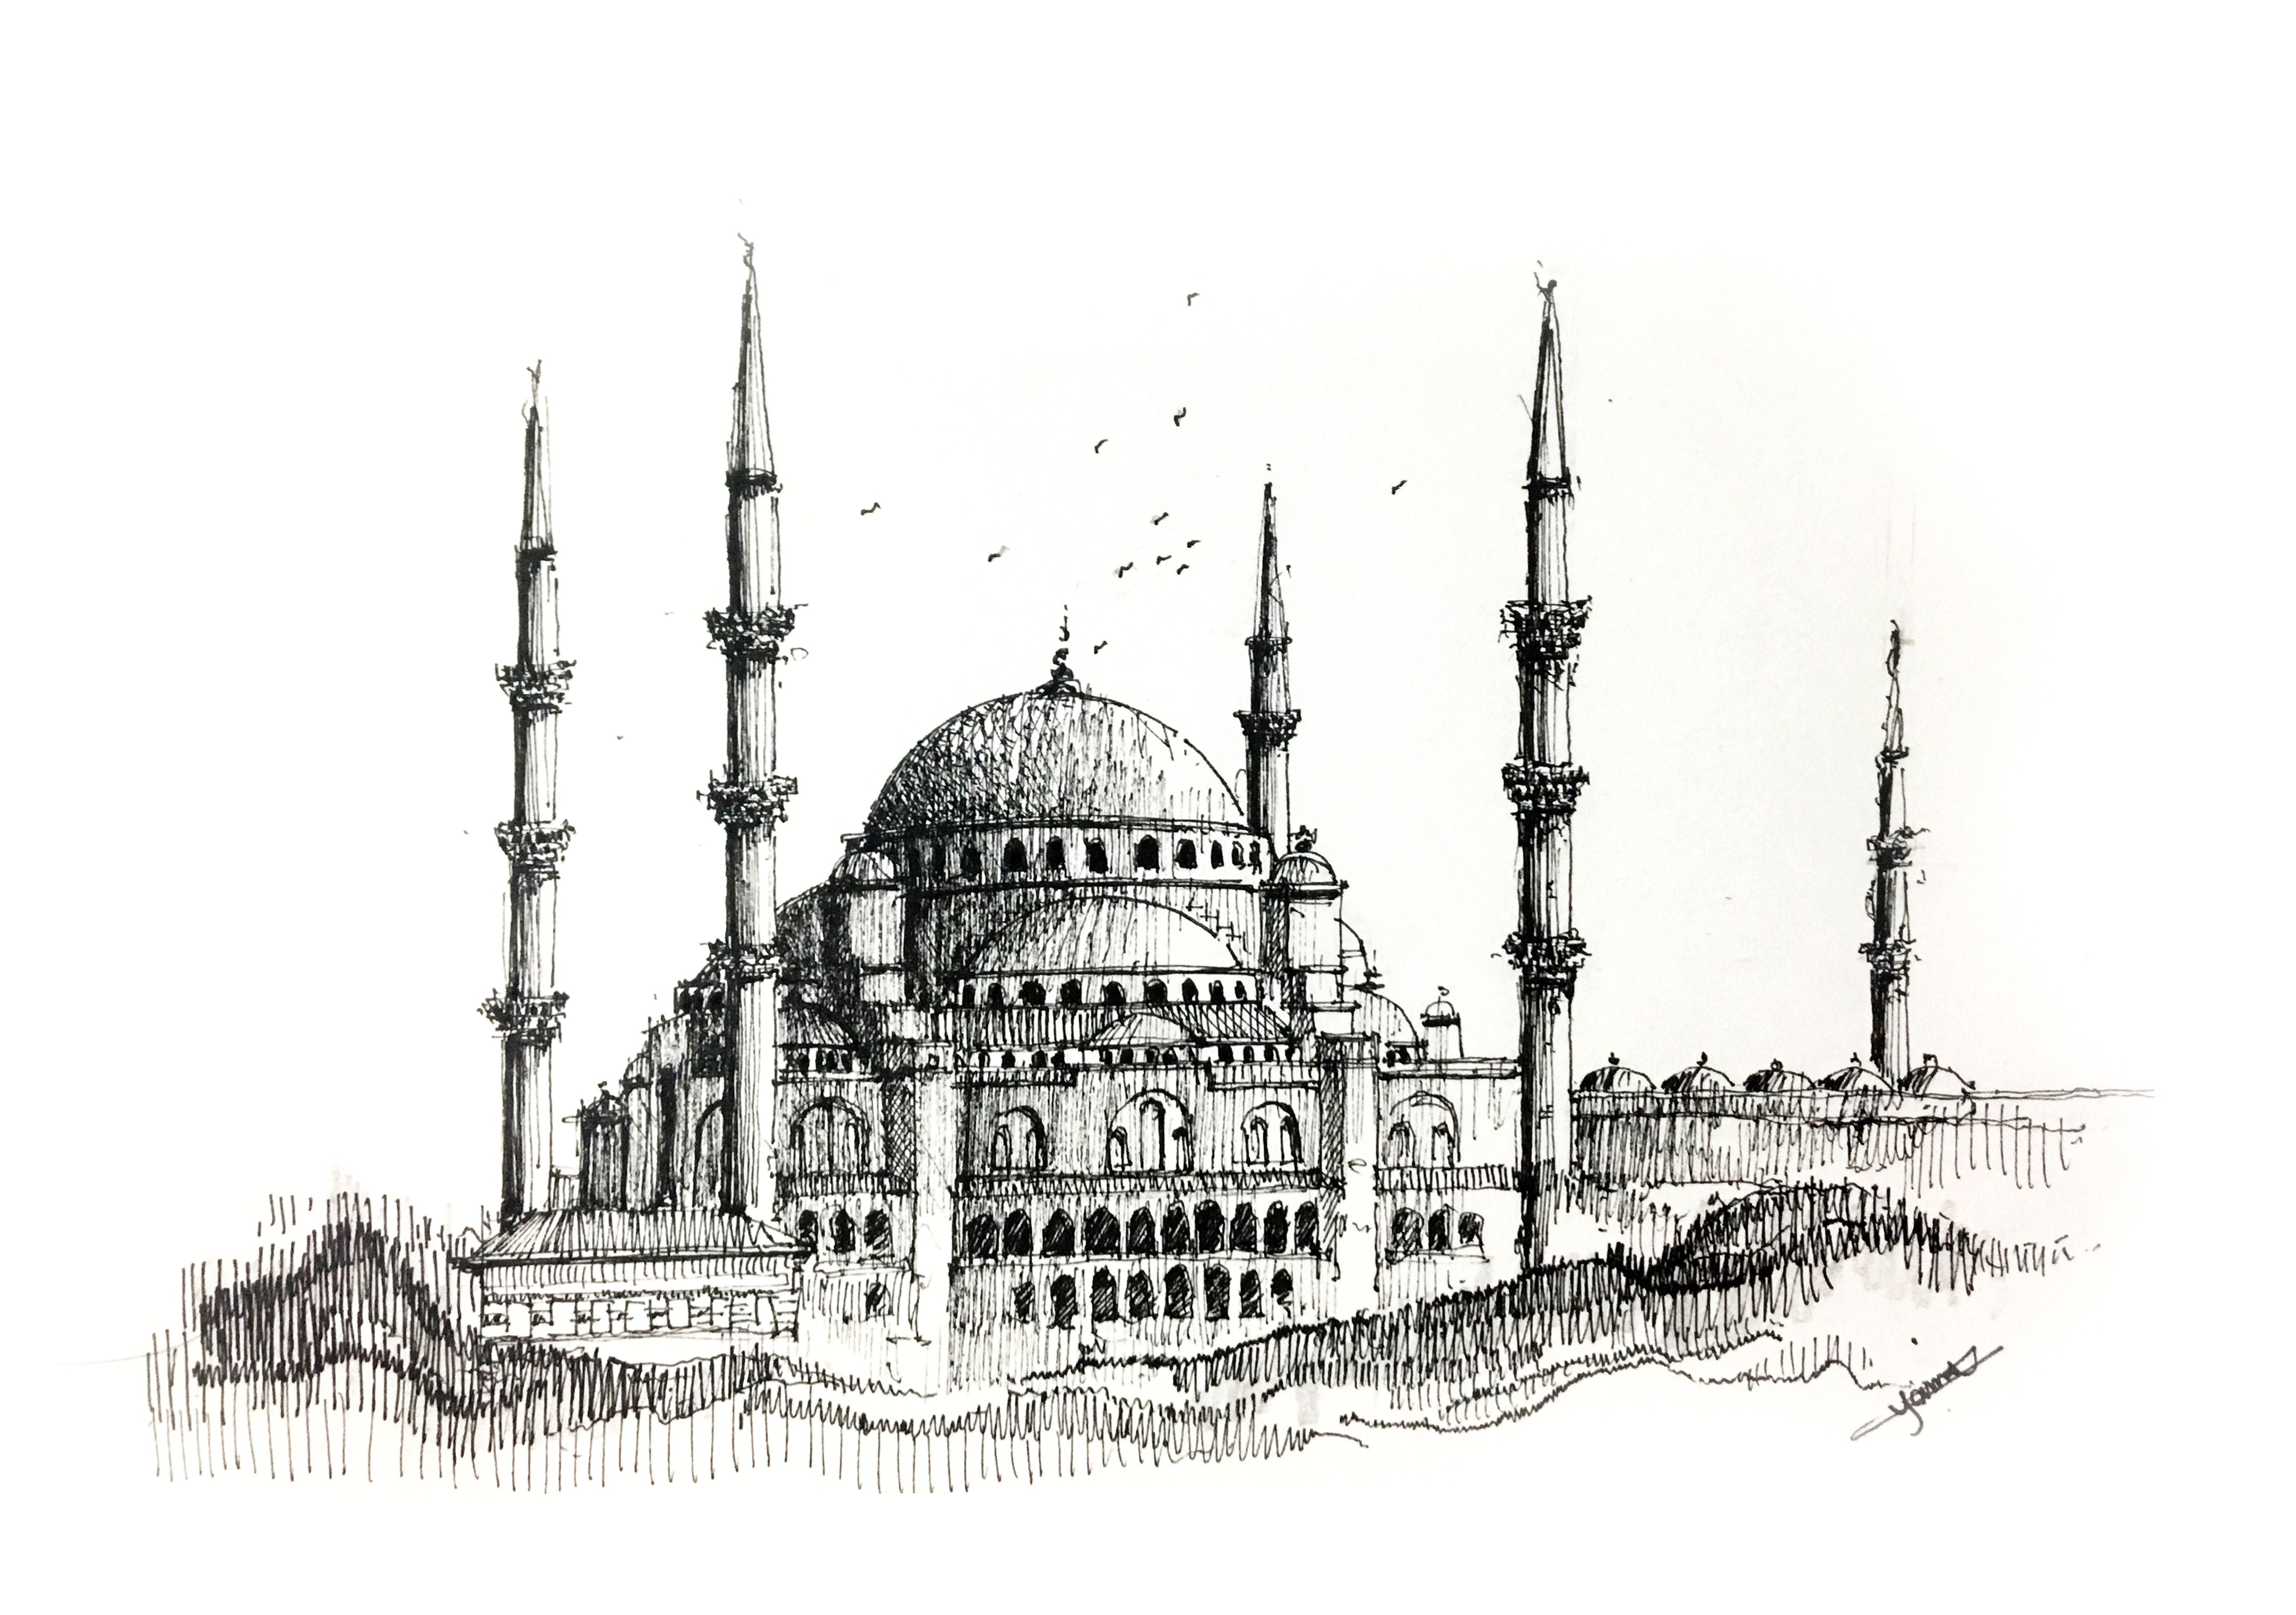 The Sultan Ahmed Mosque Istanbul Turkey Ink Drawing Copyright C 2017 Hossam El Yamani All Rights Reserved Mimari Cizim Taslaklari Resim Camiler